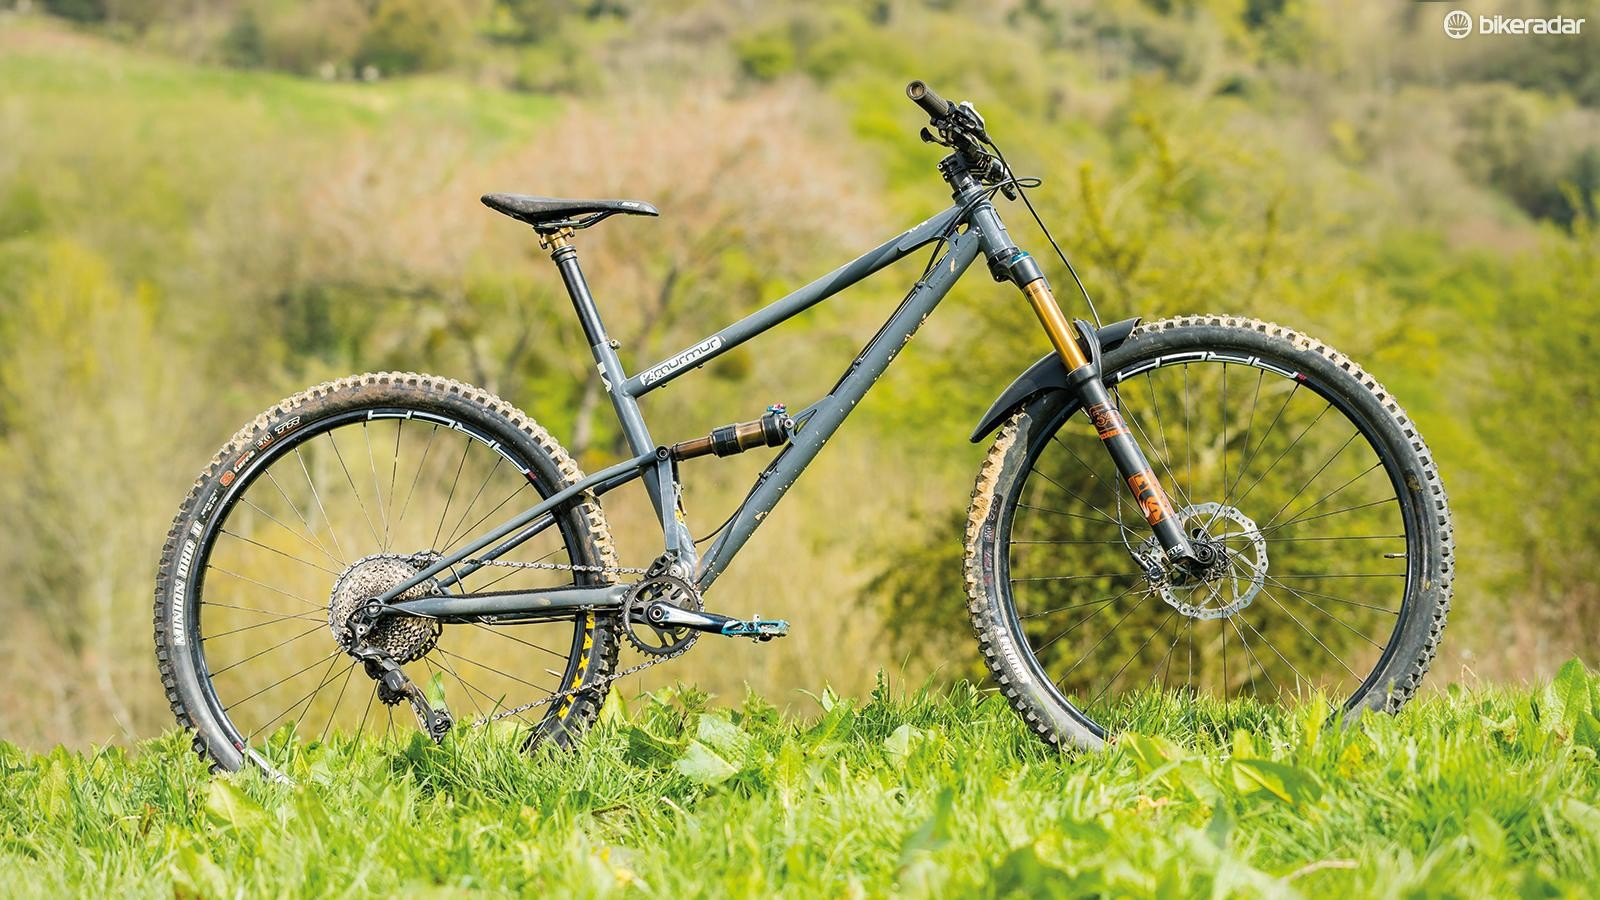 The Starling Murmur was one of the most pleasantly surprising bikes I've ridden